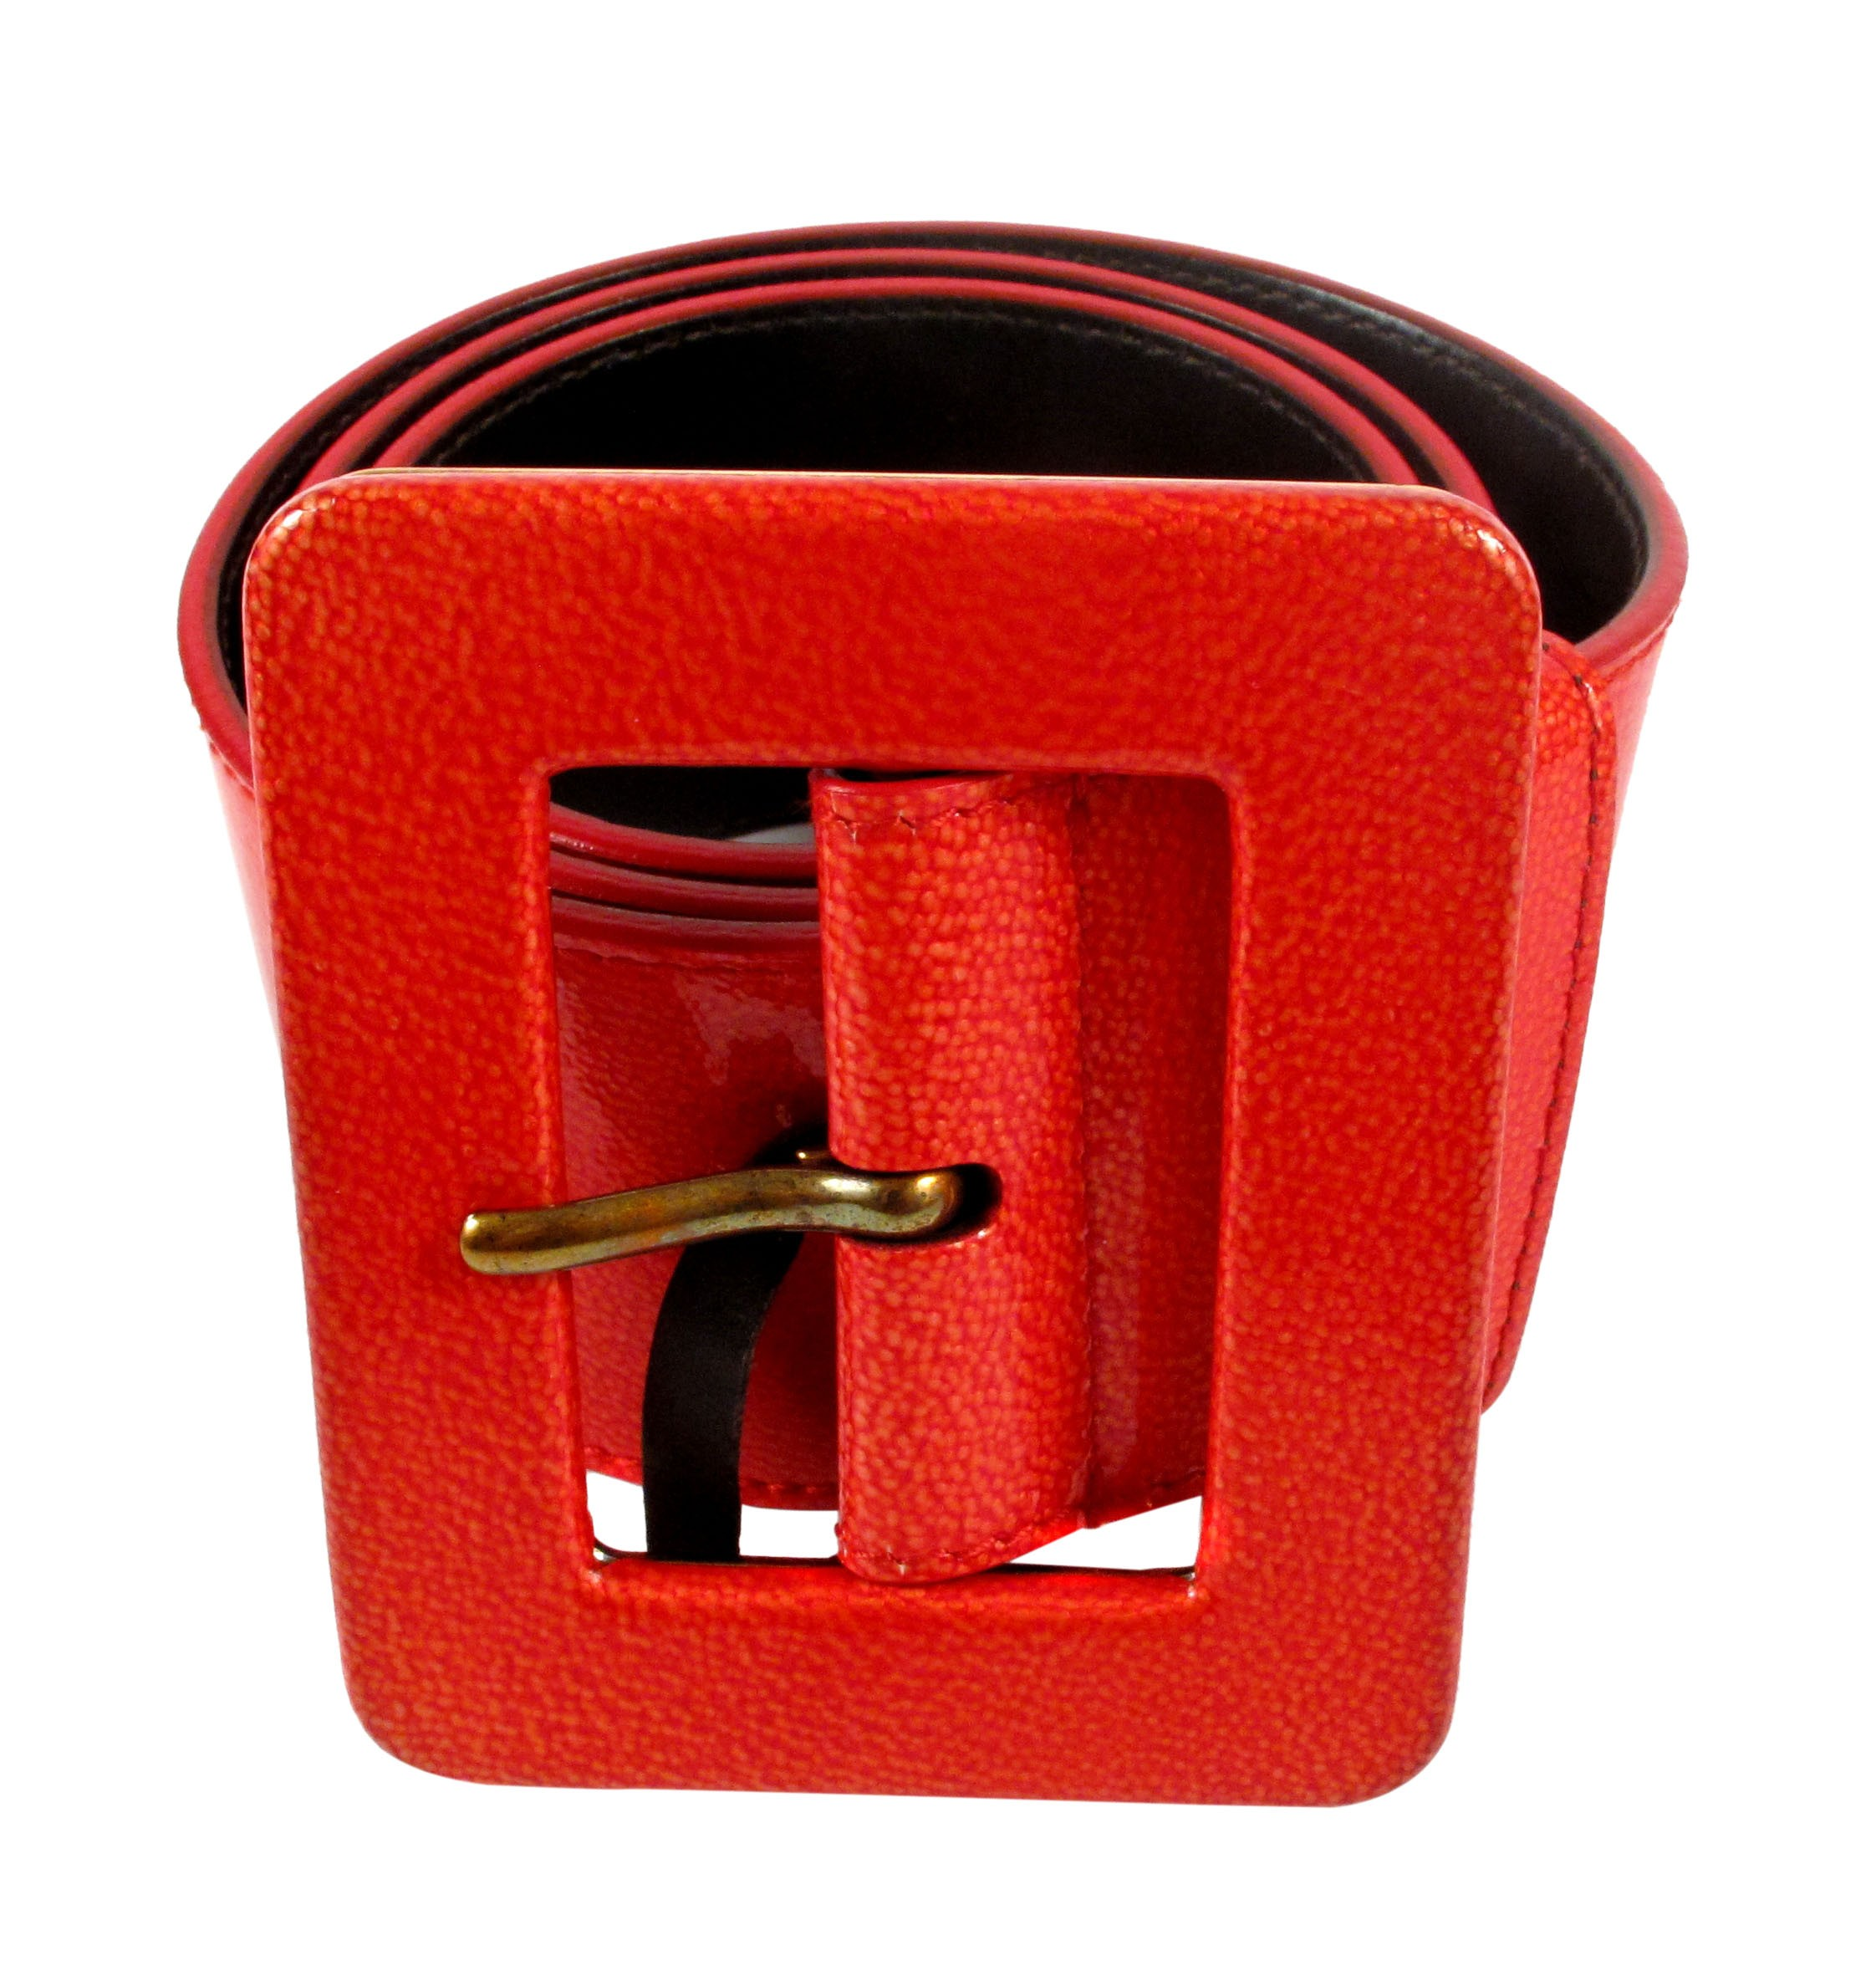 4094ebf6fcc YSL Belt - Red Patent Leather Square Buckle Gold Yves Saint Laurent